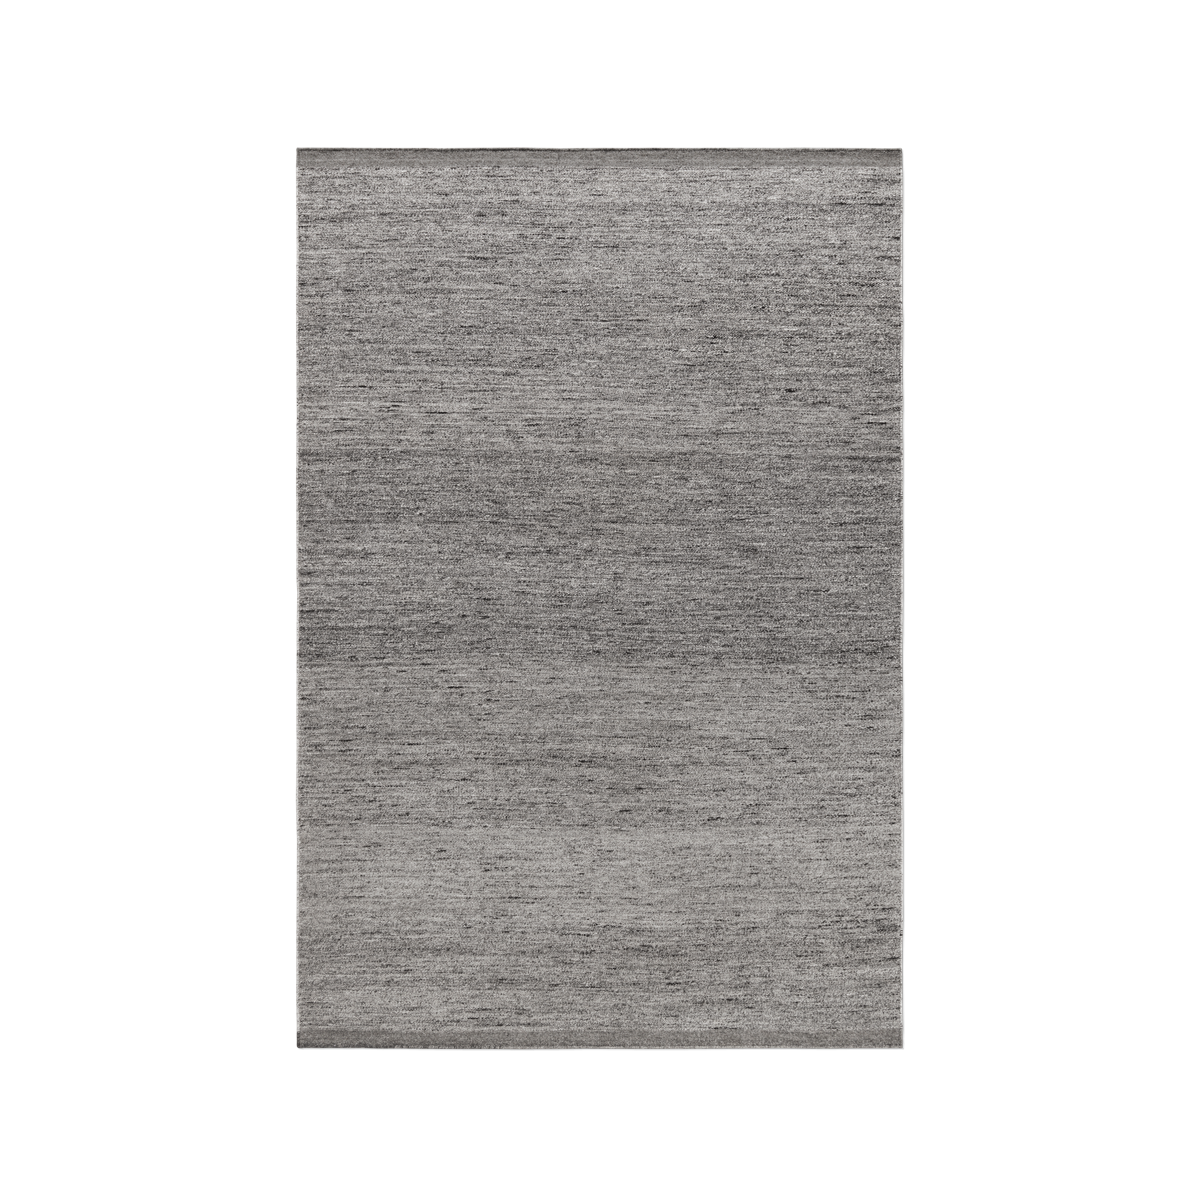 Product image of the flatweave rug Zero in color Gray Mix. The rug has two darker borders at the short sides.